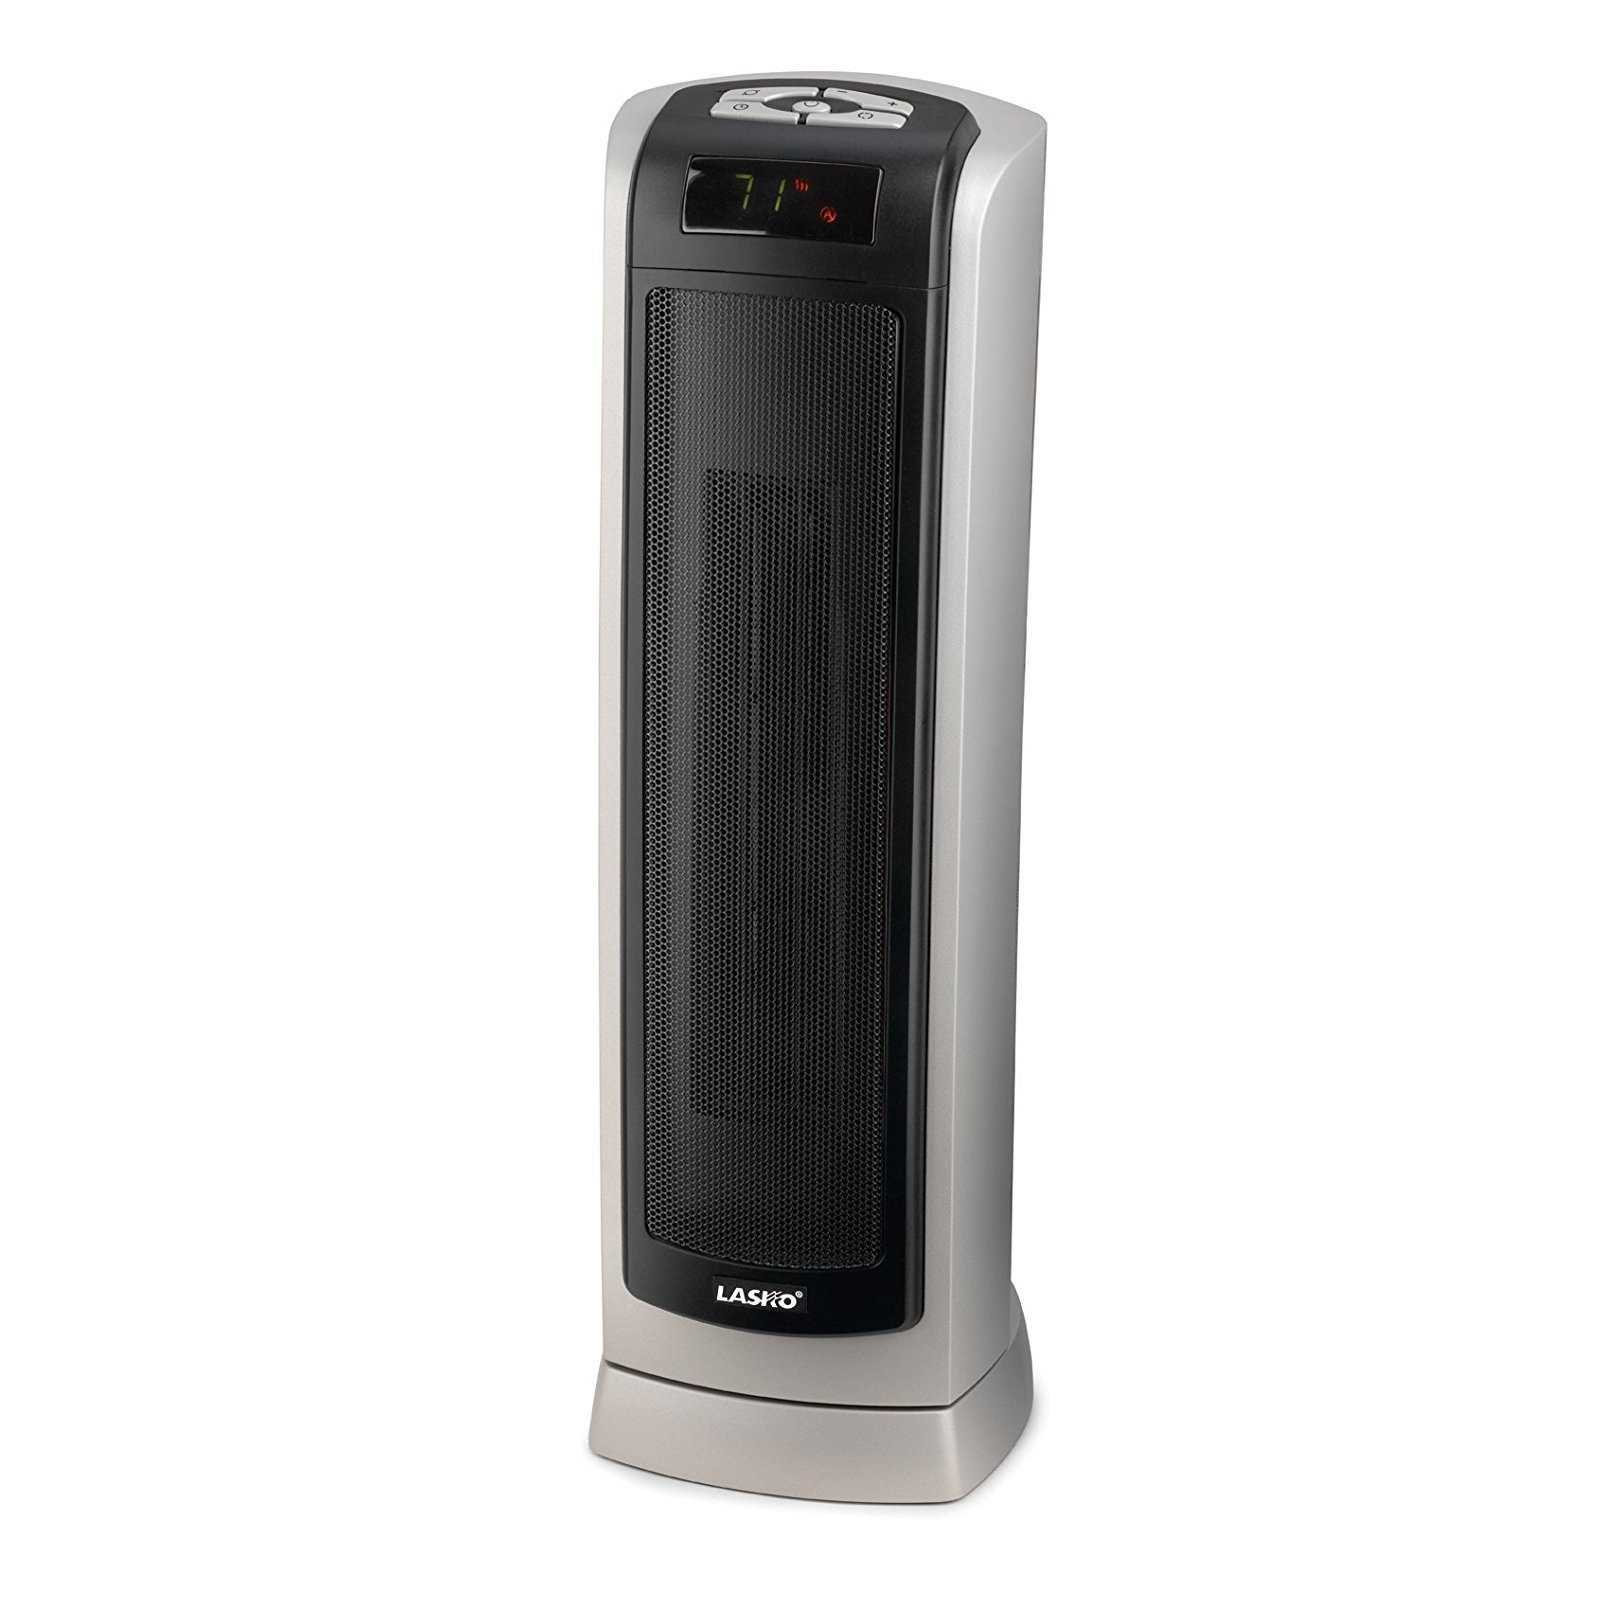 Lasko 5521 Digital Ceramic Tower Heater